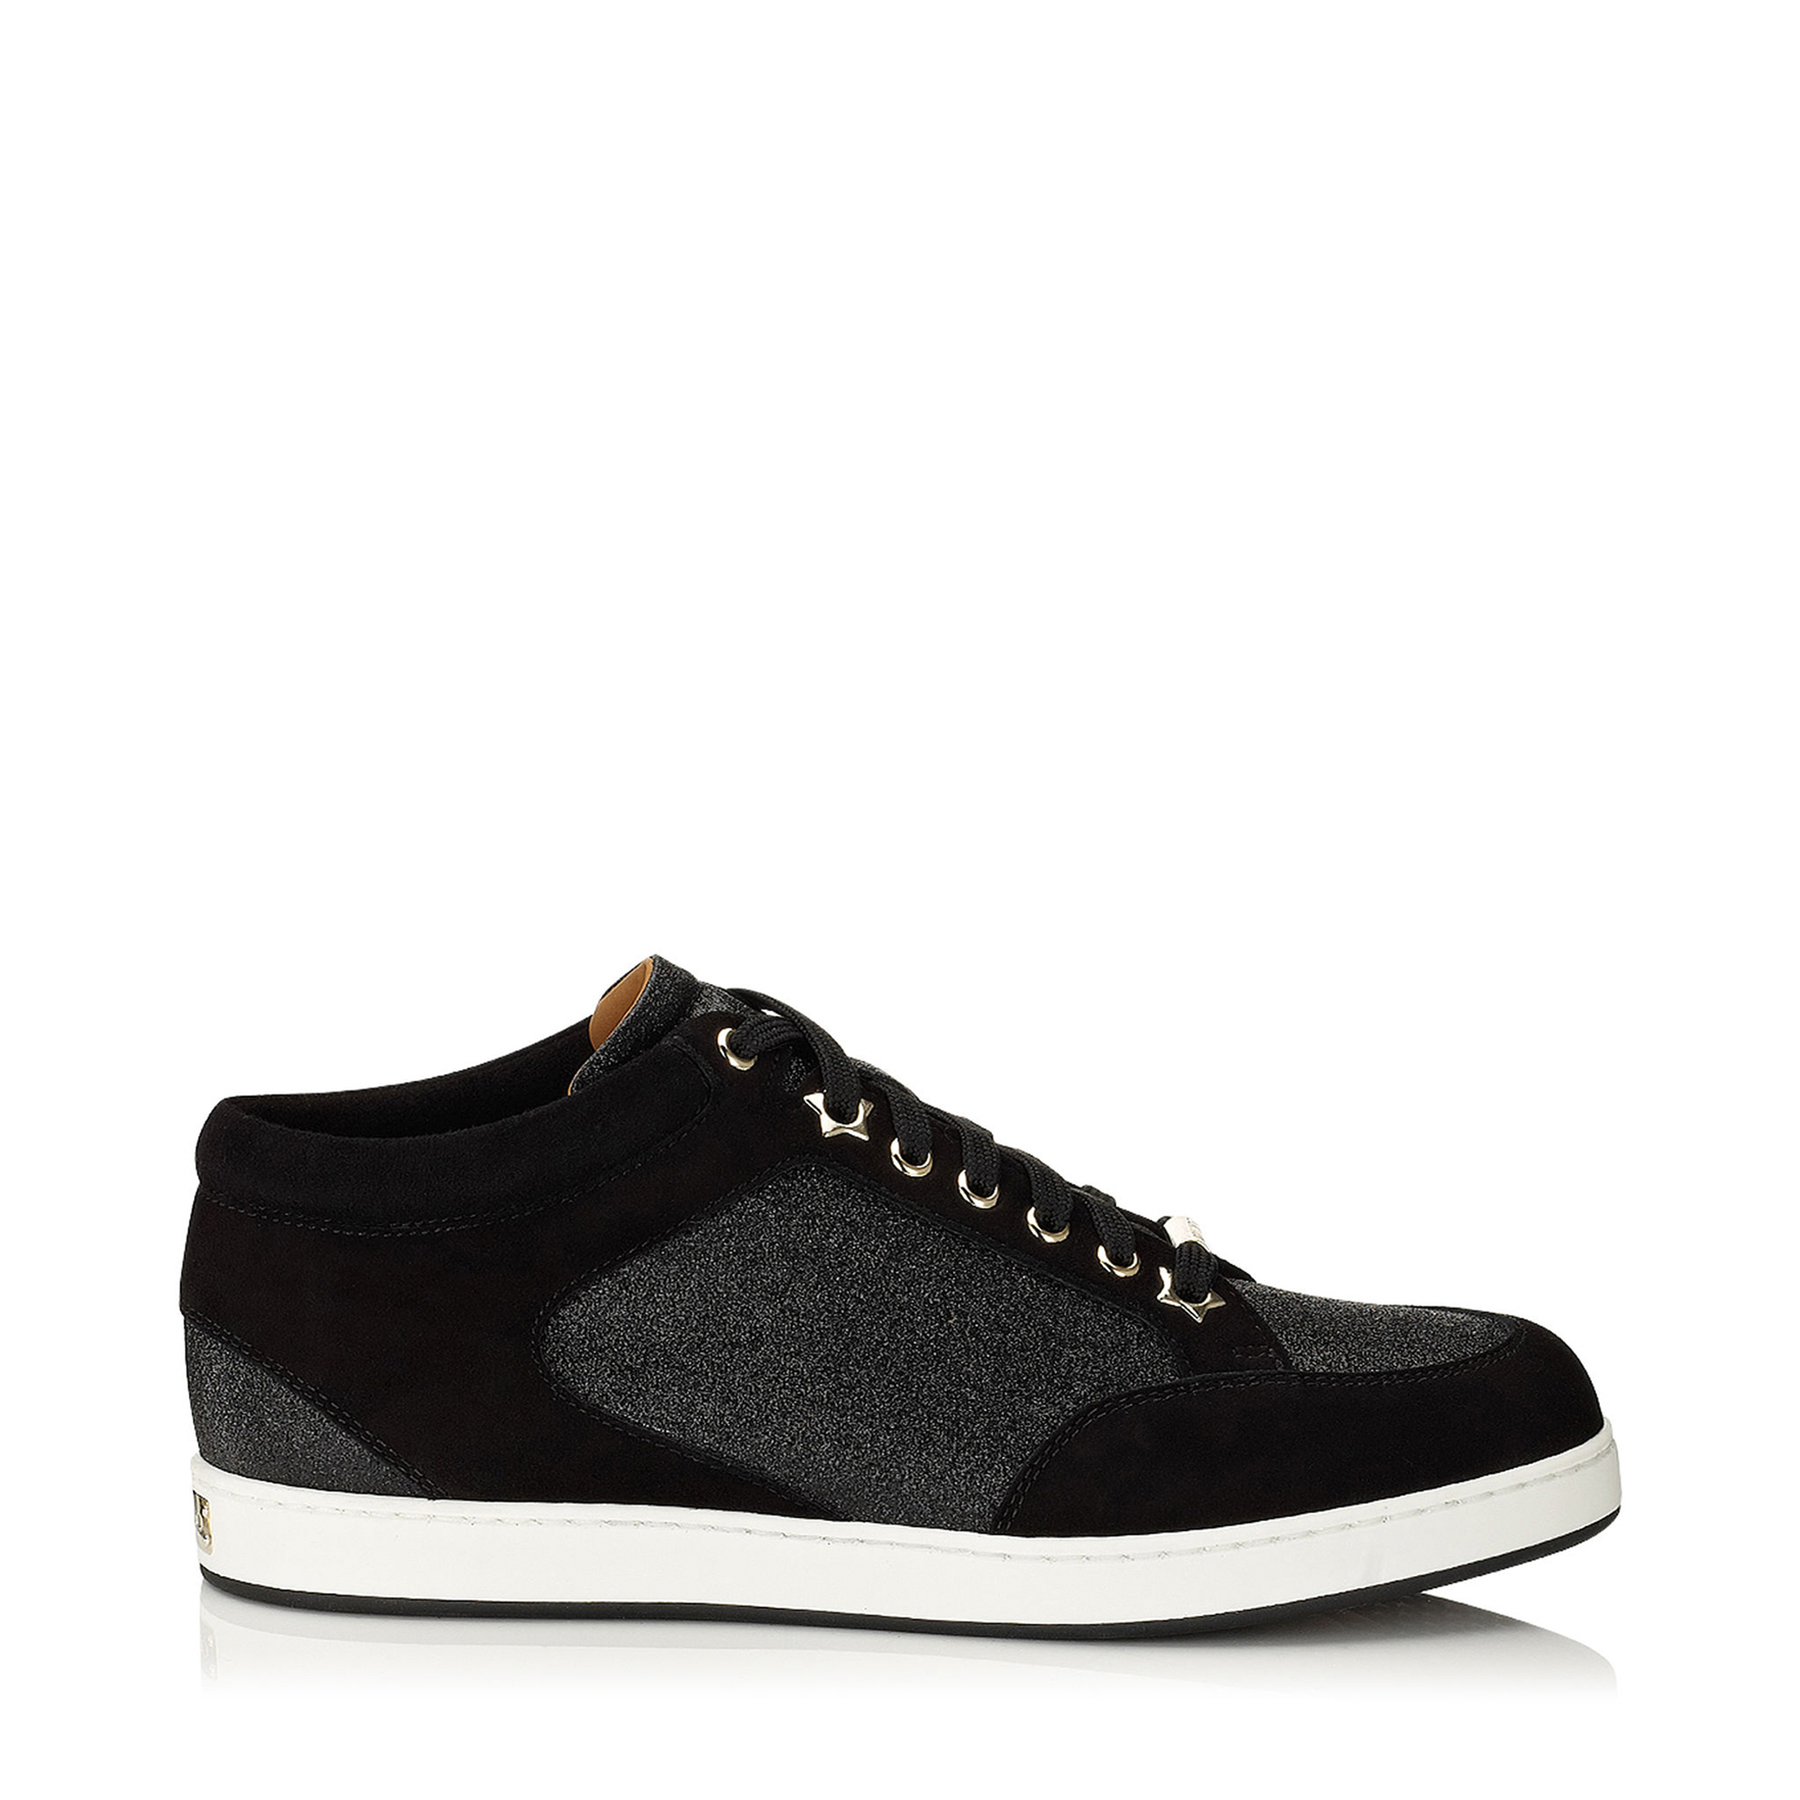 MIAMI Black Fine Glitter and Suede Sneakers by Jimmy Choo